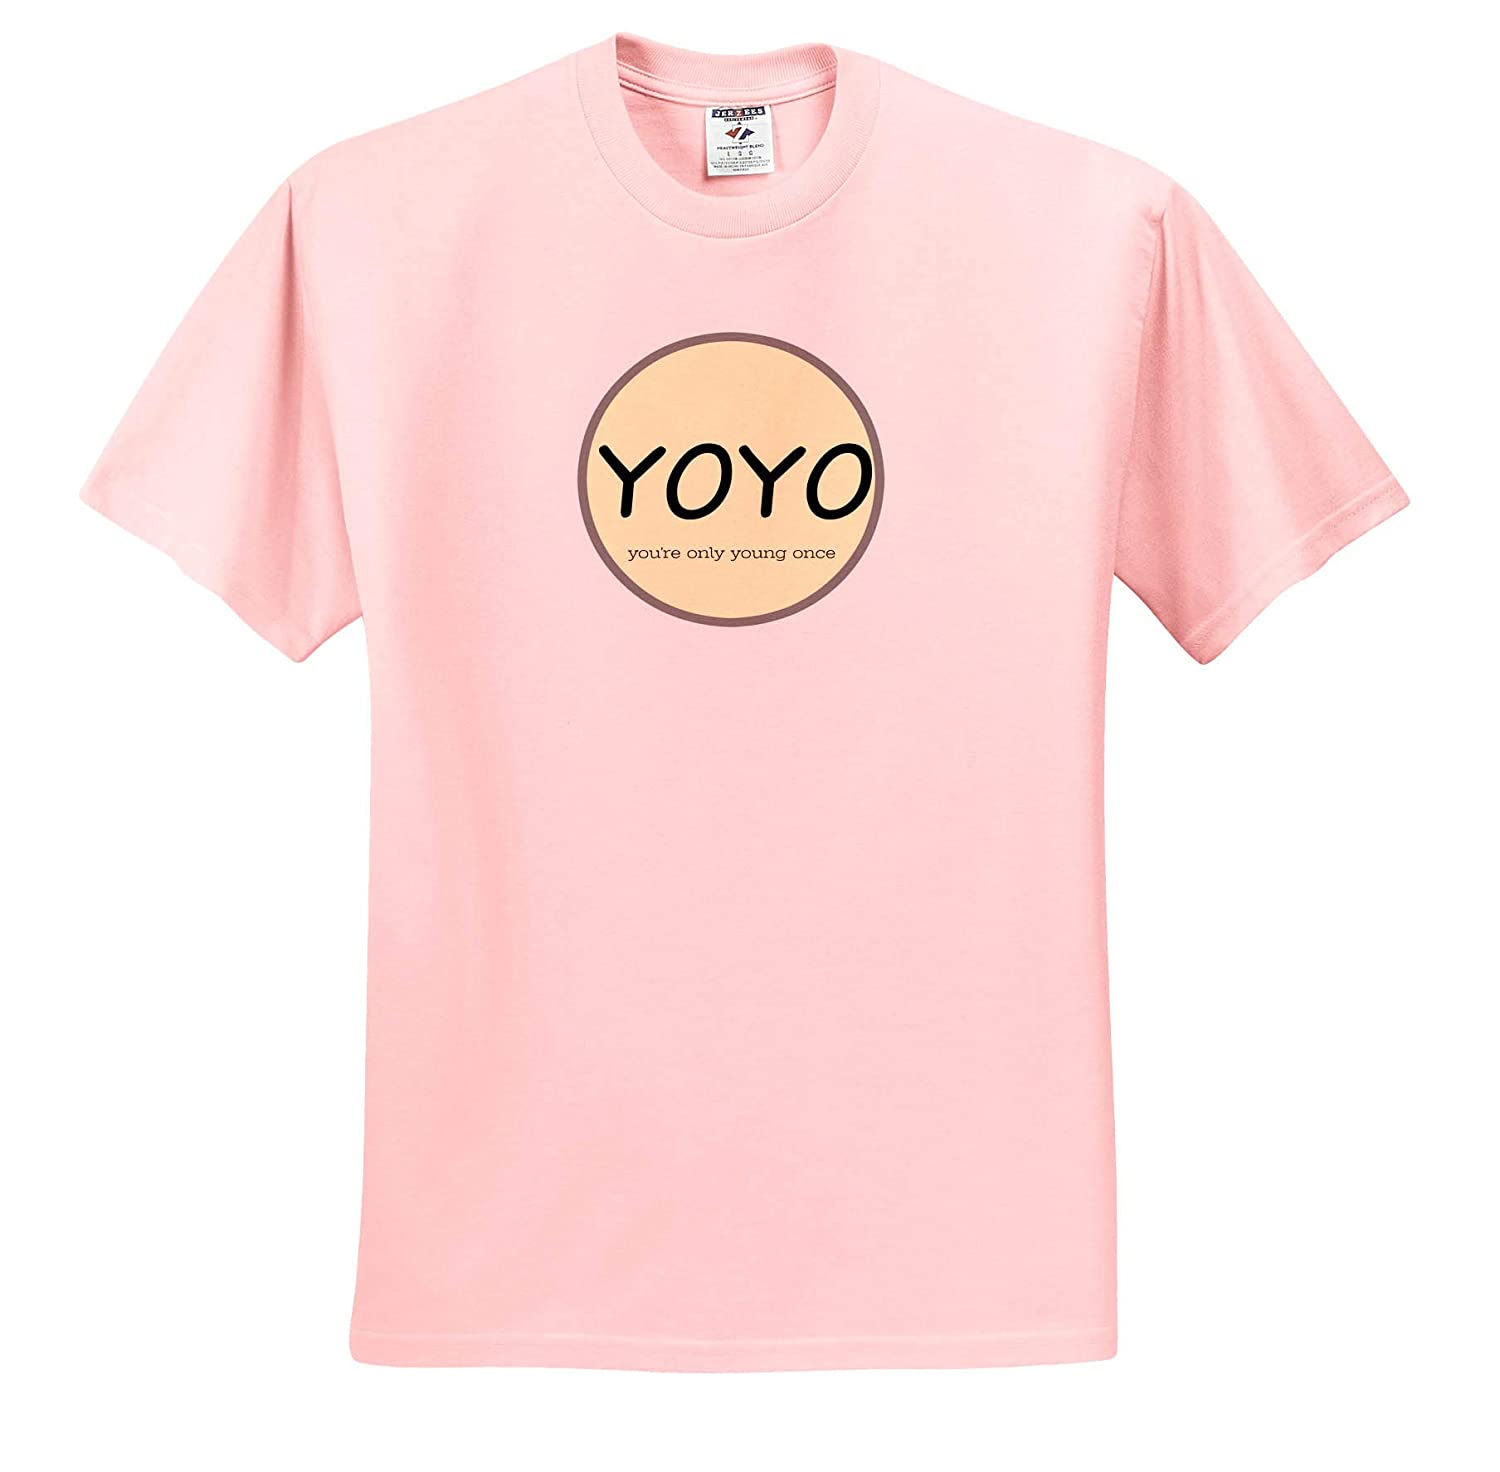 Adult T-Shirt XL 3dRose Carrie Merchant Image Image of Yoyo You are Only Young Once ts/_309570